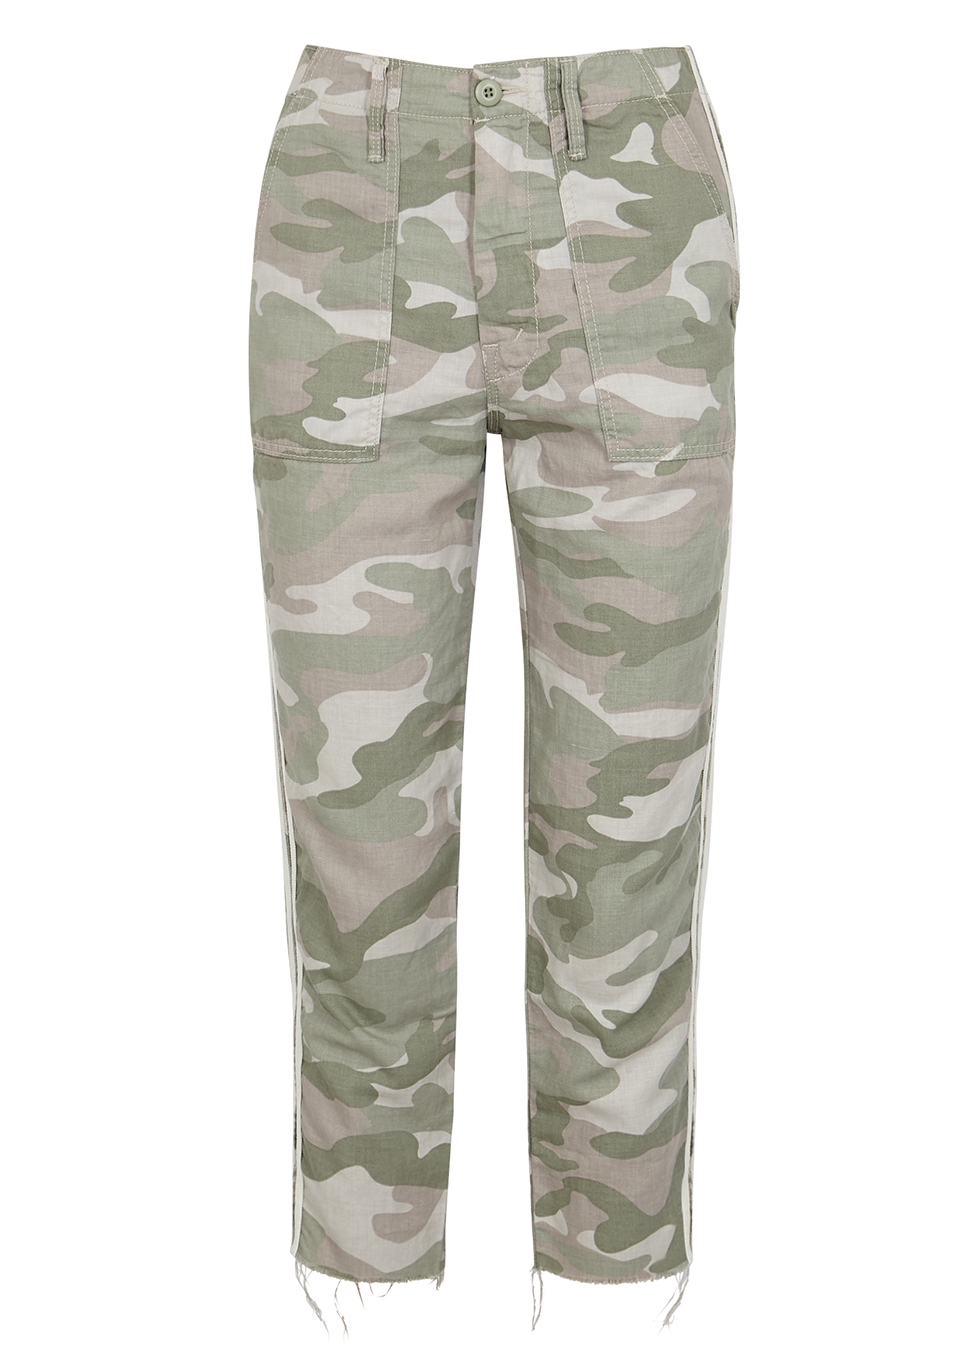 The Shaker printed cotton-blend trousers - Mother